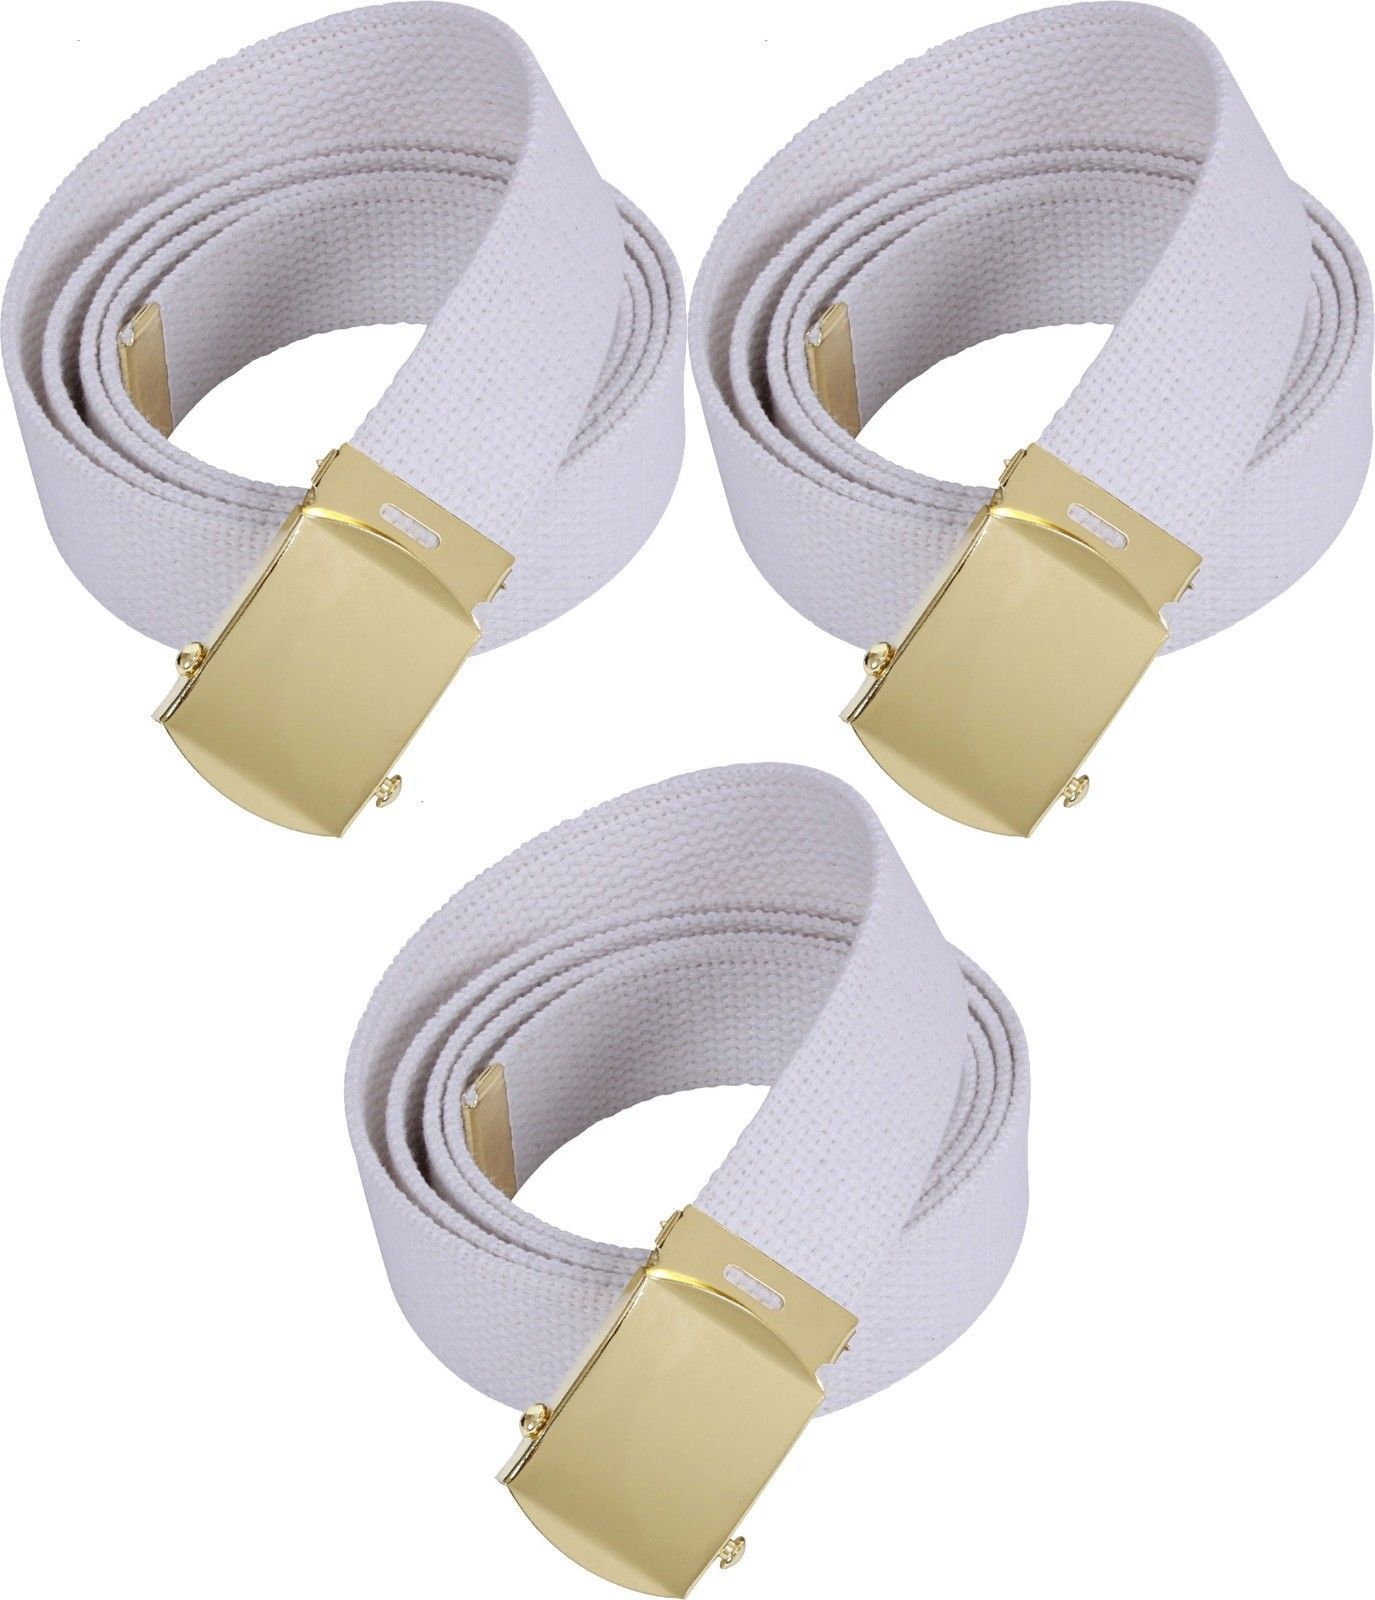 White Military Cotton Web Belt with Gold and 30 similar items 3bb9eeb0d93